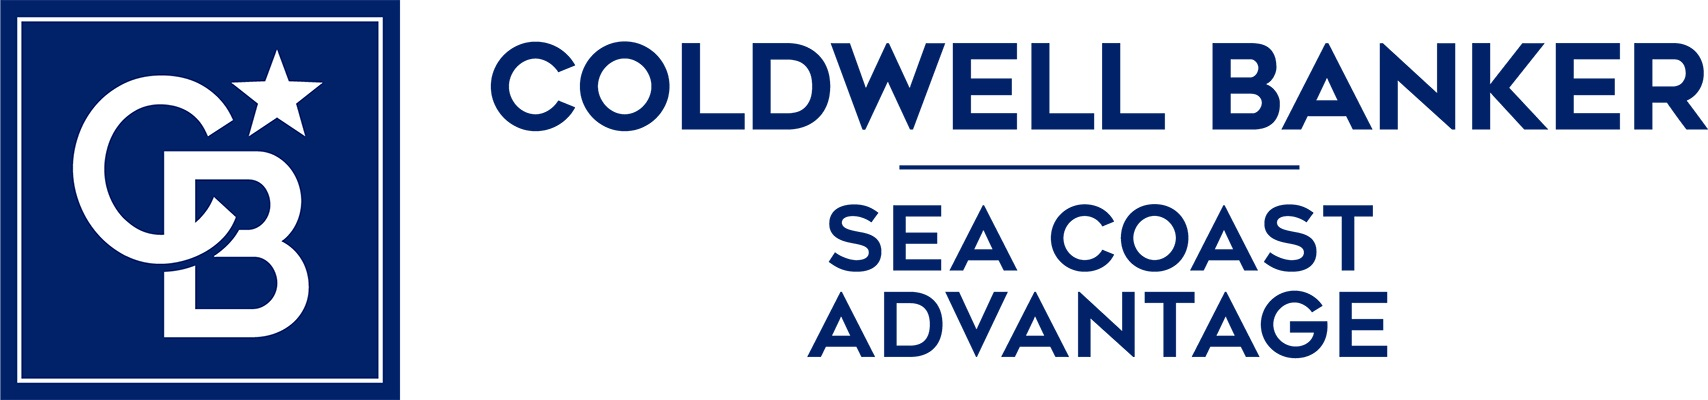 Denise Williams - Coldwell Banker Sea Coast Advantage Realty Logo